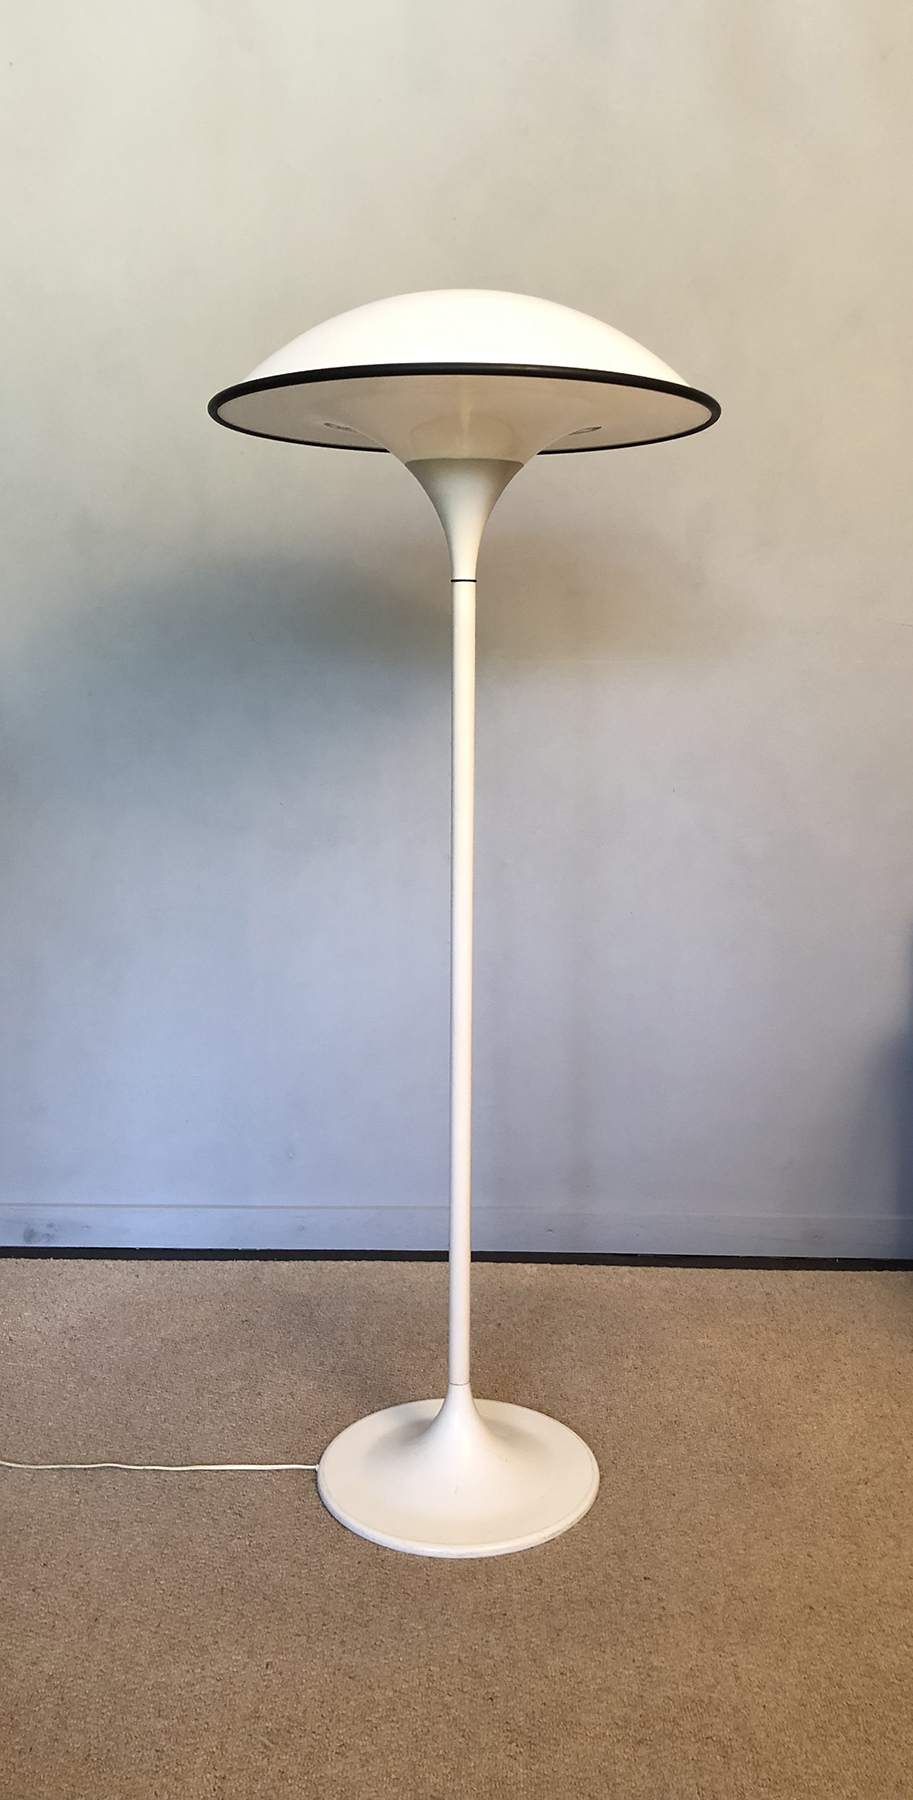 Cosmos floor lamp by Preben Jacobsen